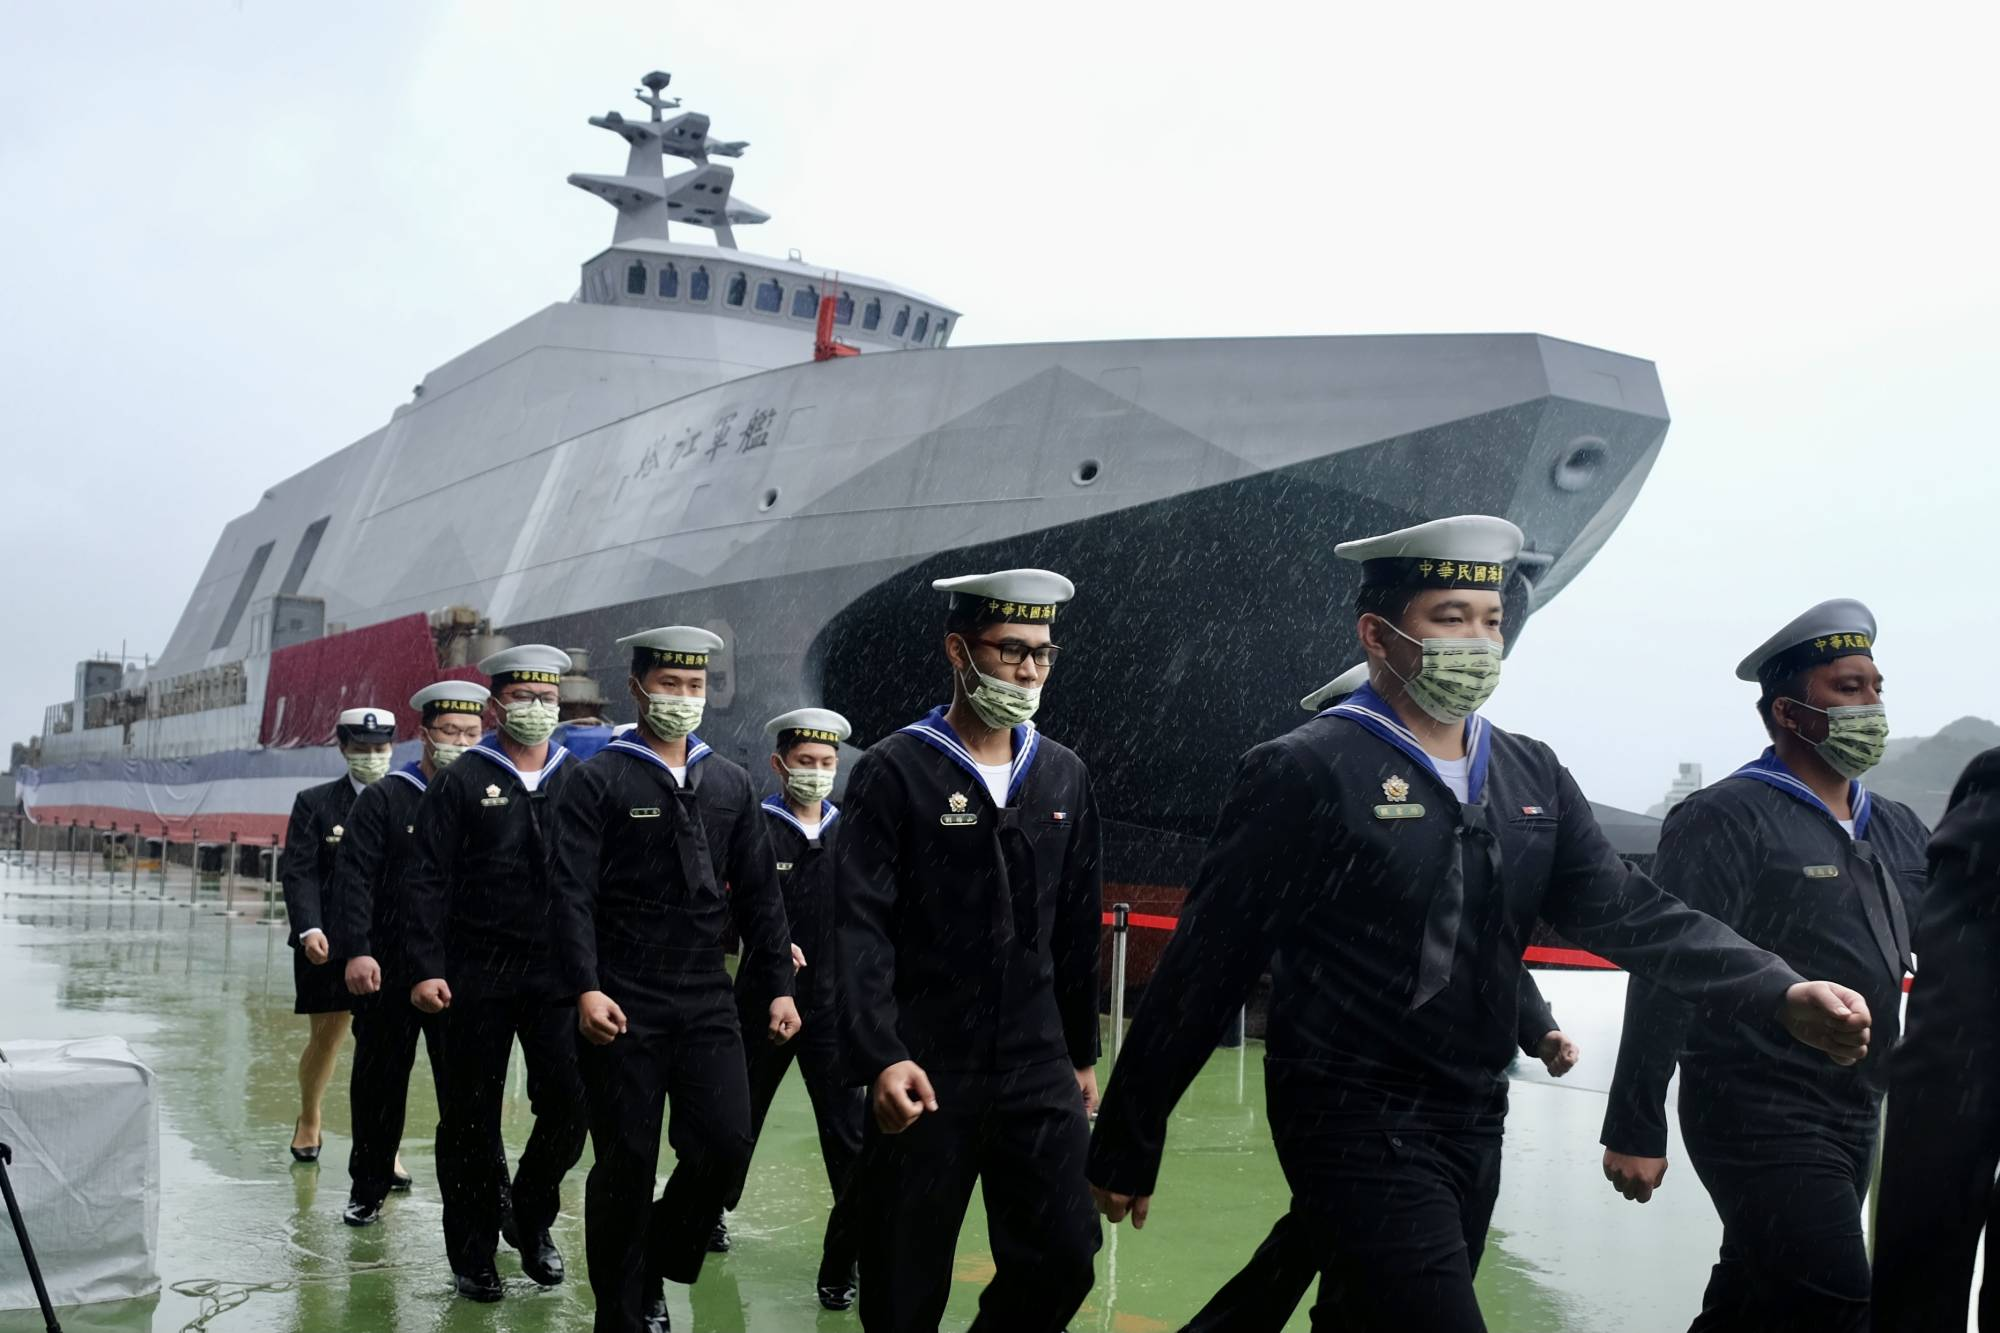 Taiwanese Navy sailors walk past a domestically built Tuo Chiang-class corvette during an official ceremony at a shipyard in Suao, Taiwan, on Dec. 15, 2020. | AFP-JIJI